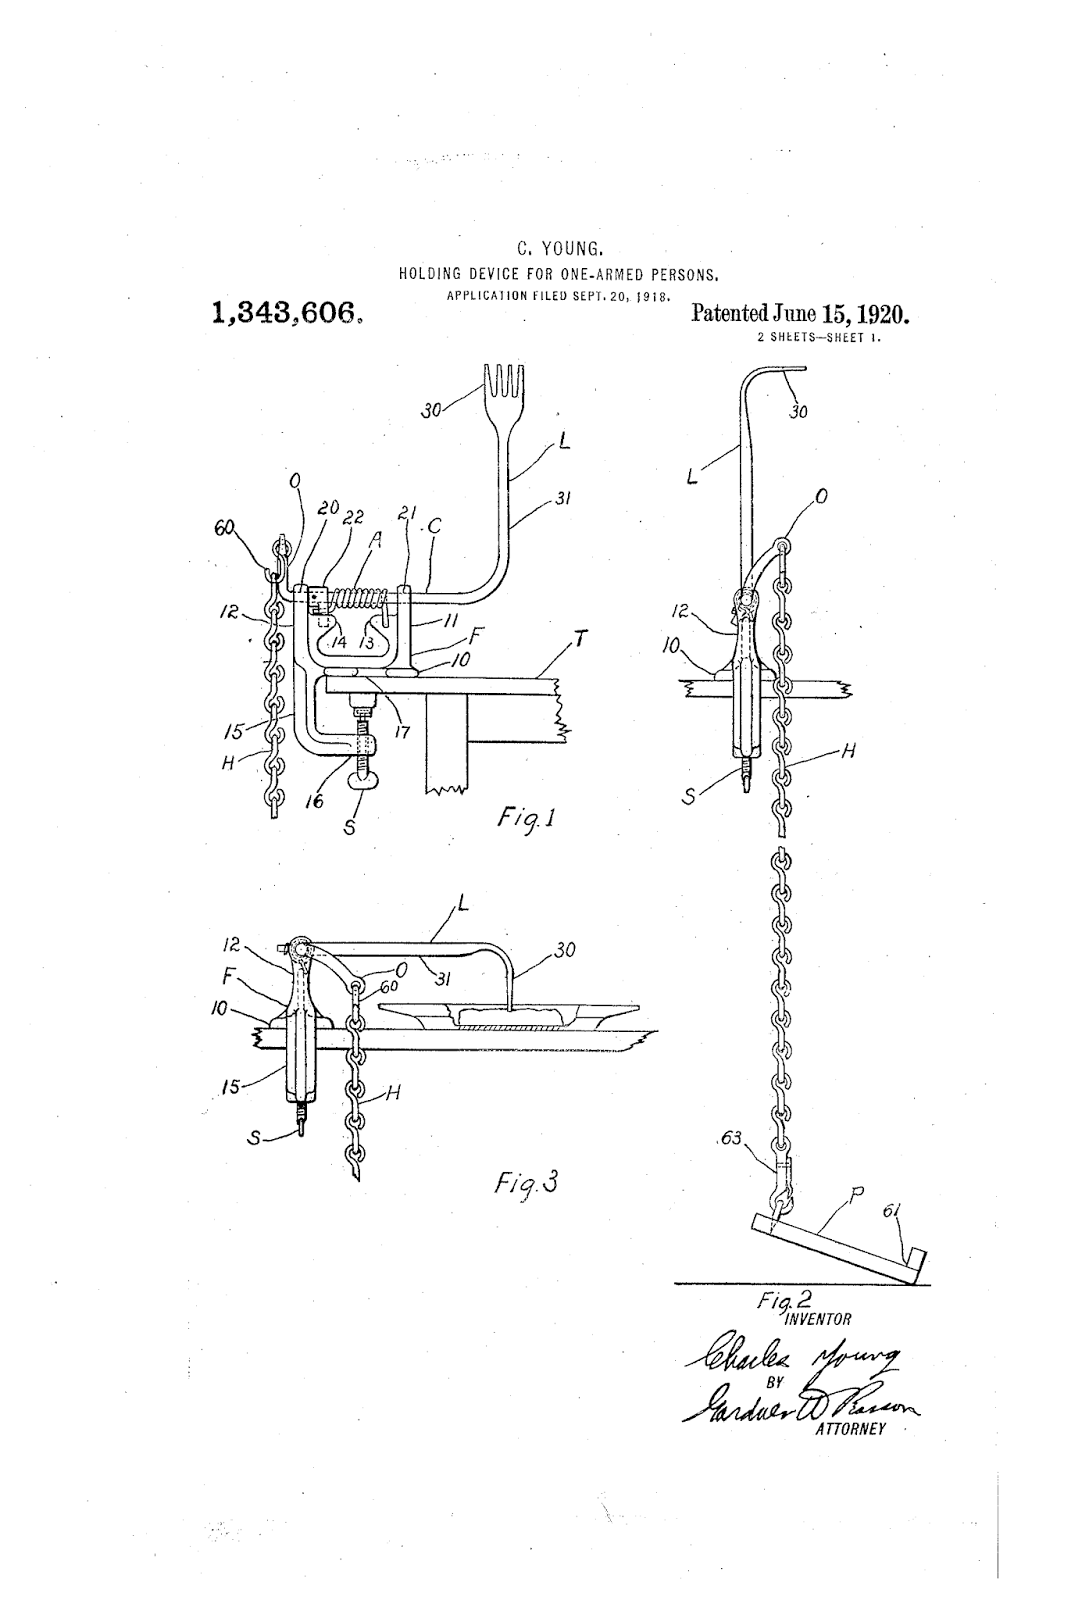 THE PATENT SEARCH BLOG: February 2014